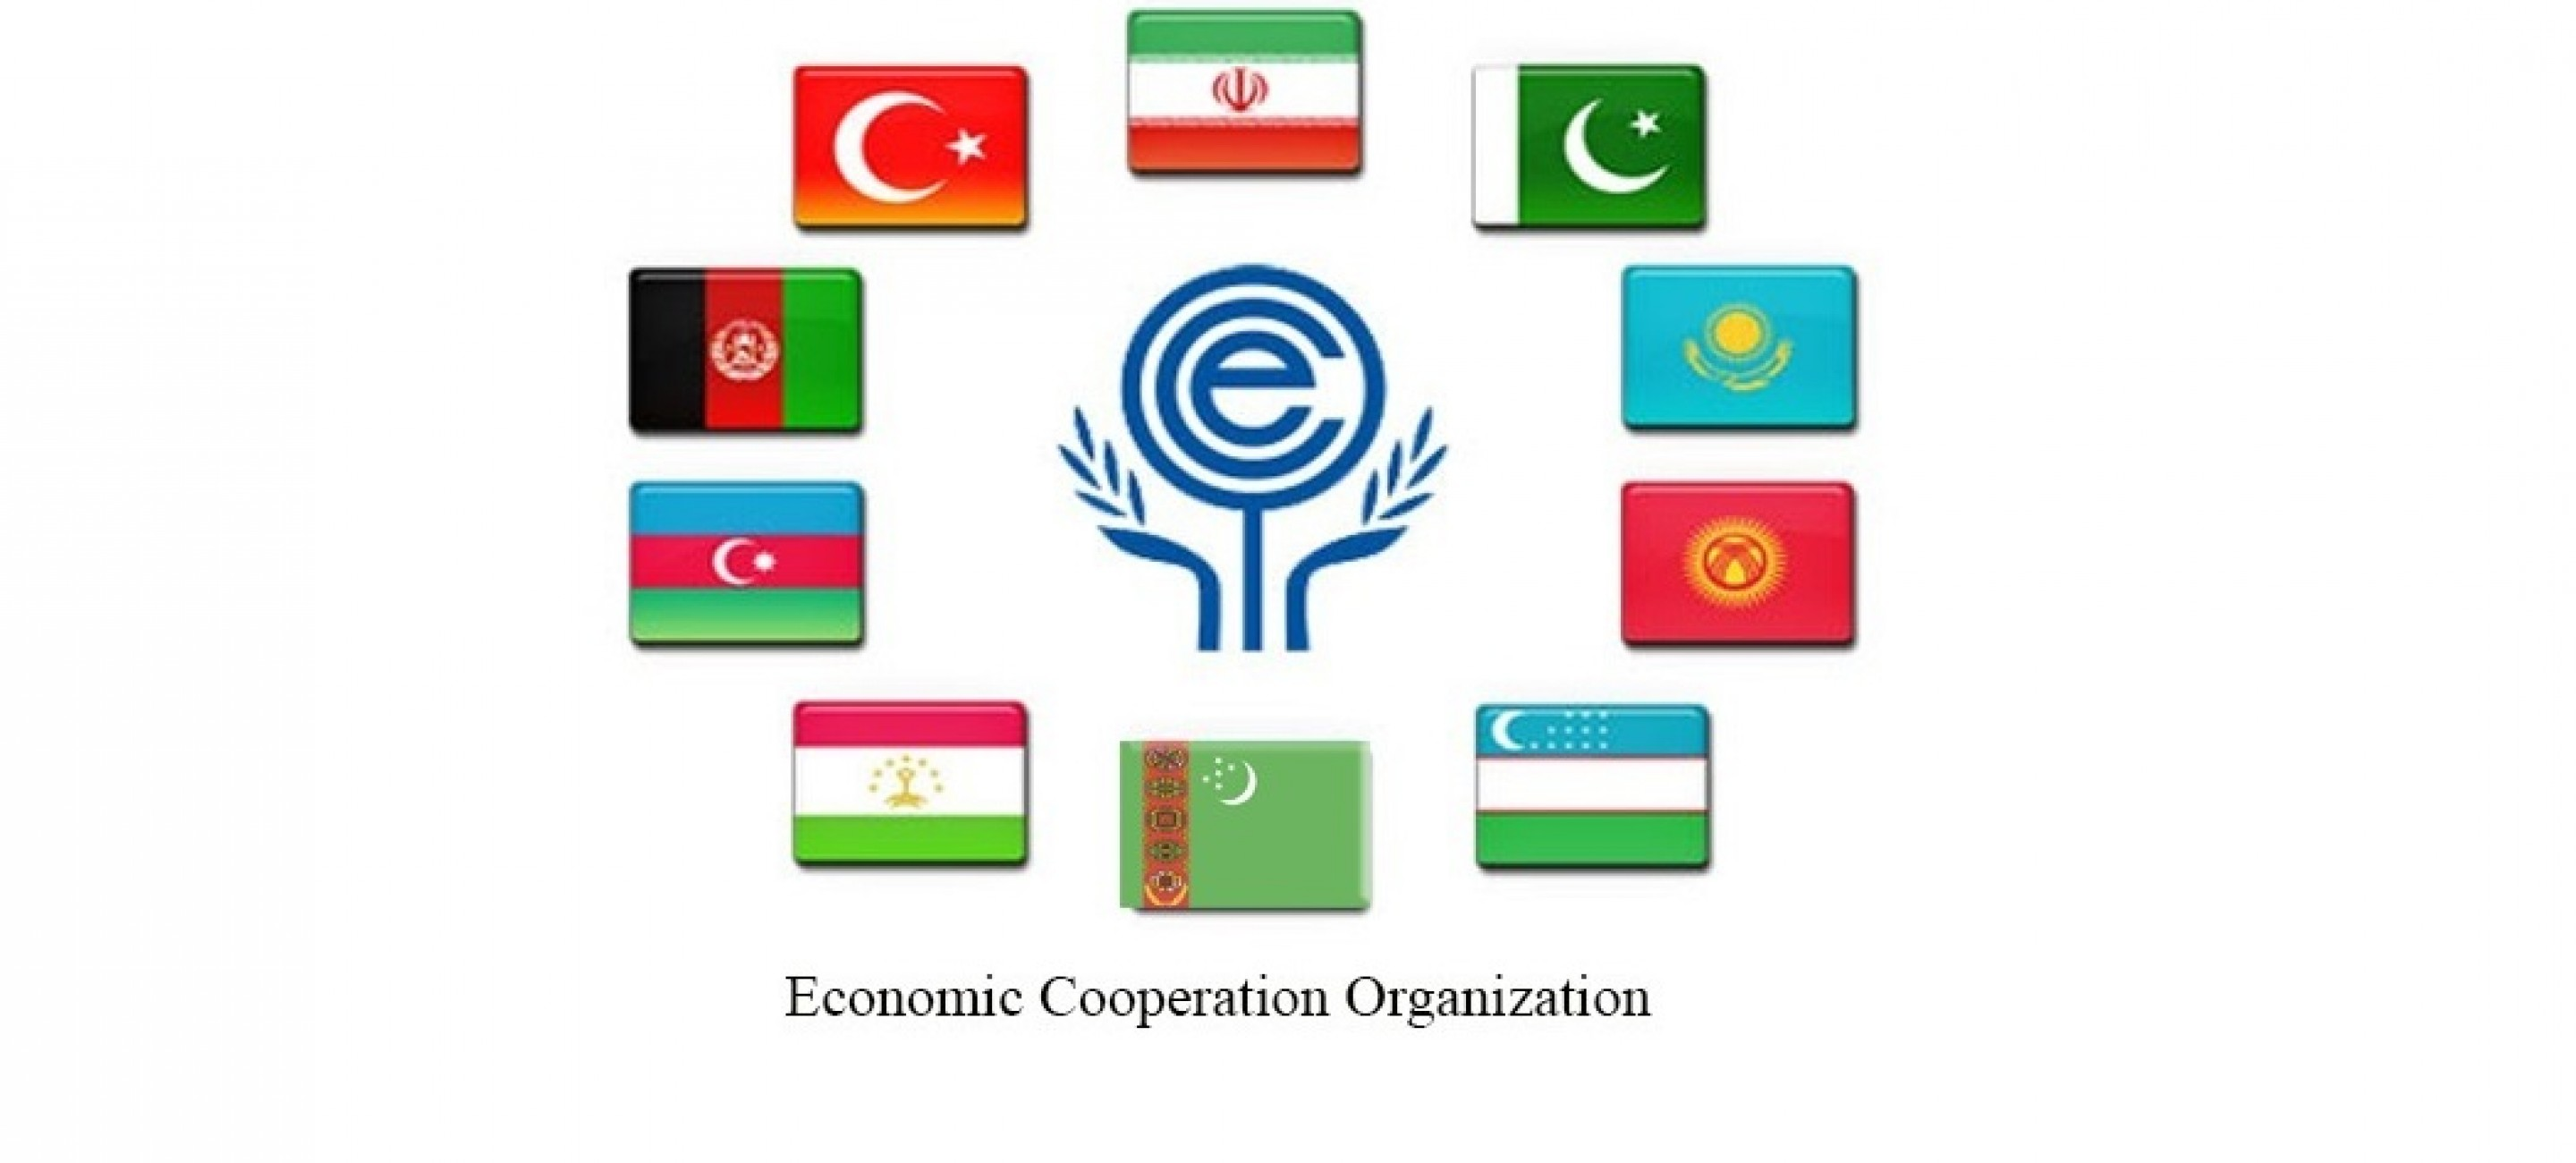 President Gurbanguly Berdimuhamedov participated at the Summit of the ECO in Islamabad